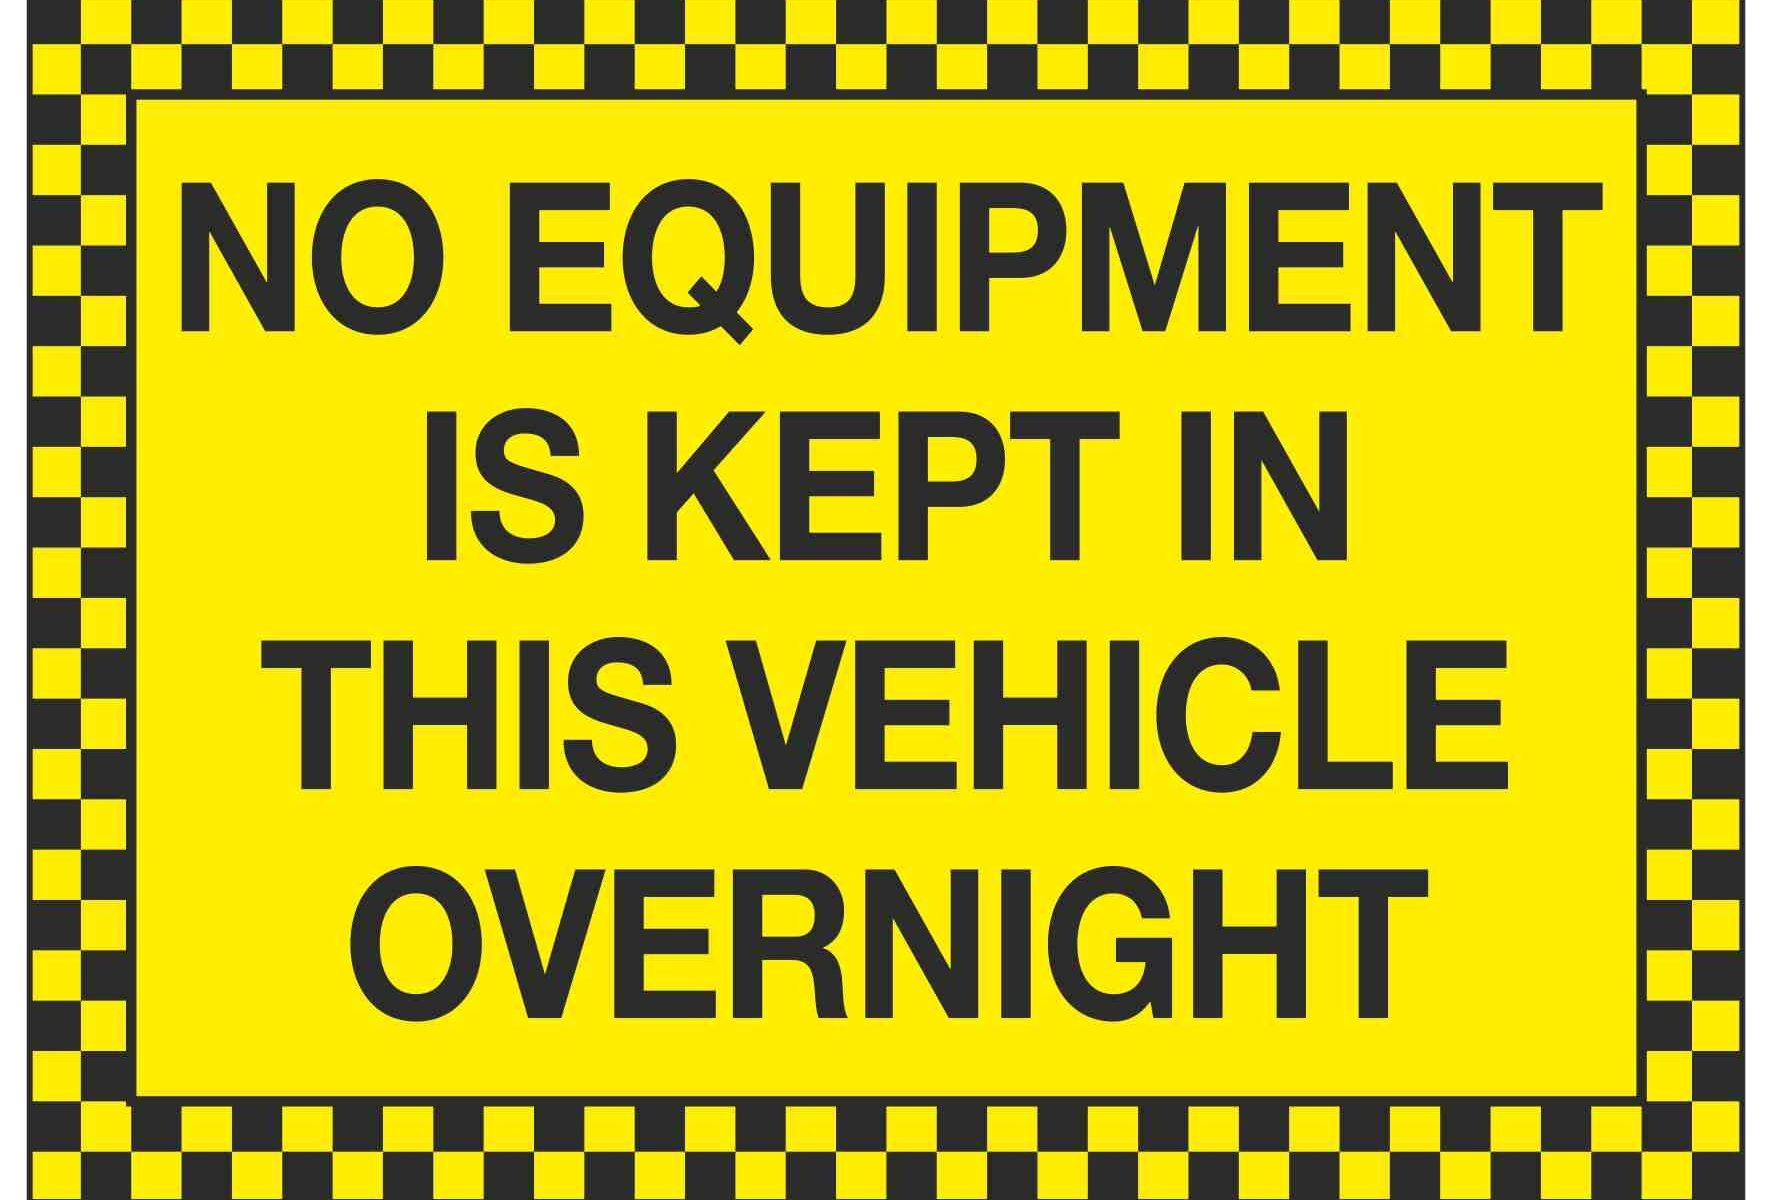 NO EQUIPMENT IS KEPT IN THIS VEHICLE OVERNIGHT